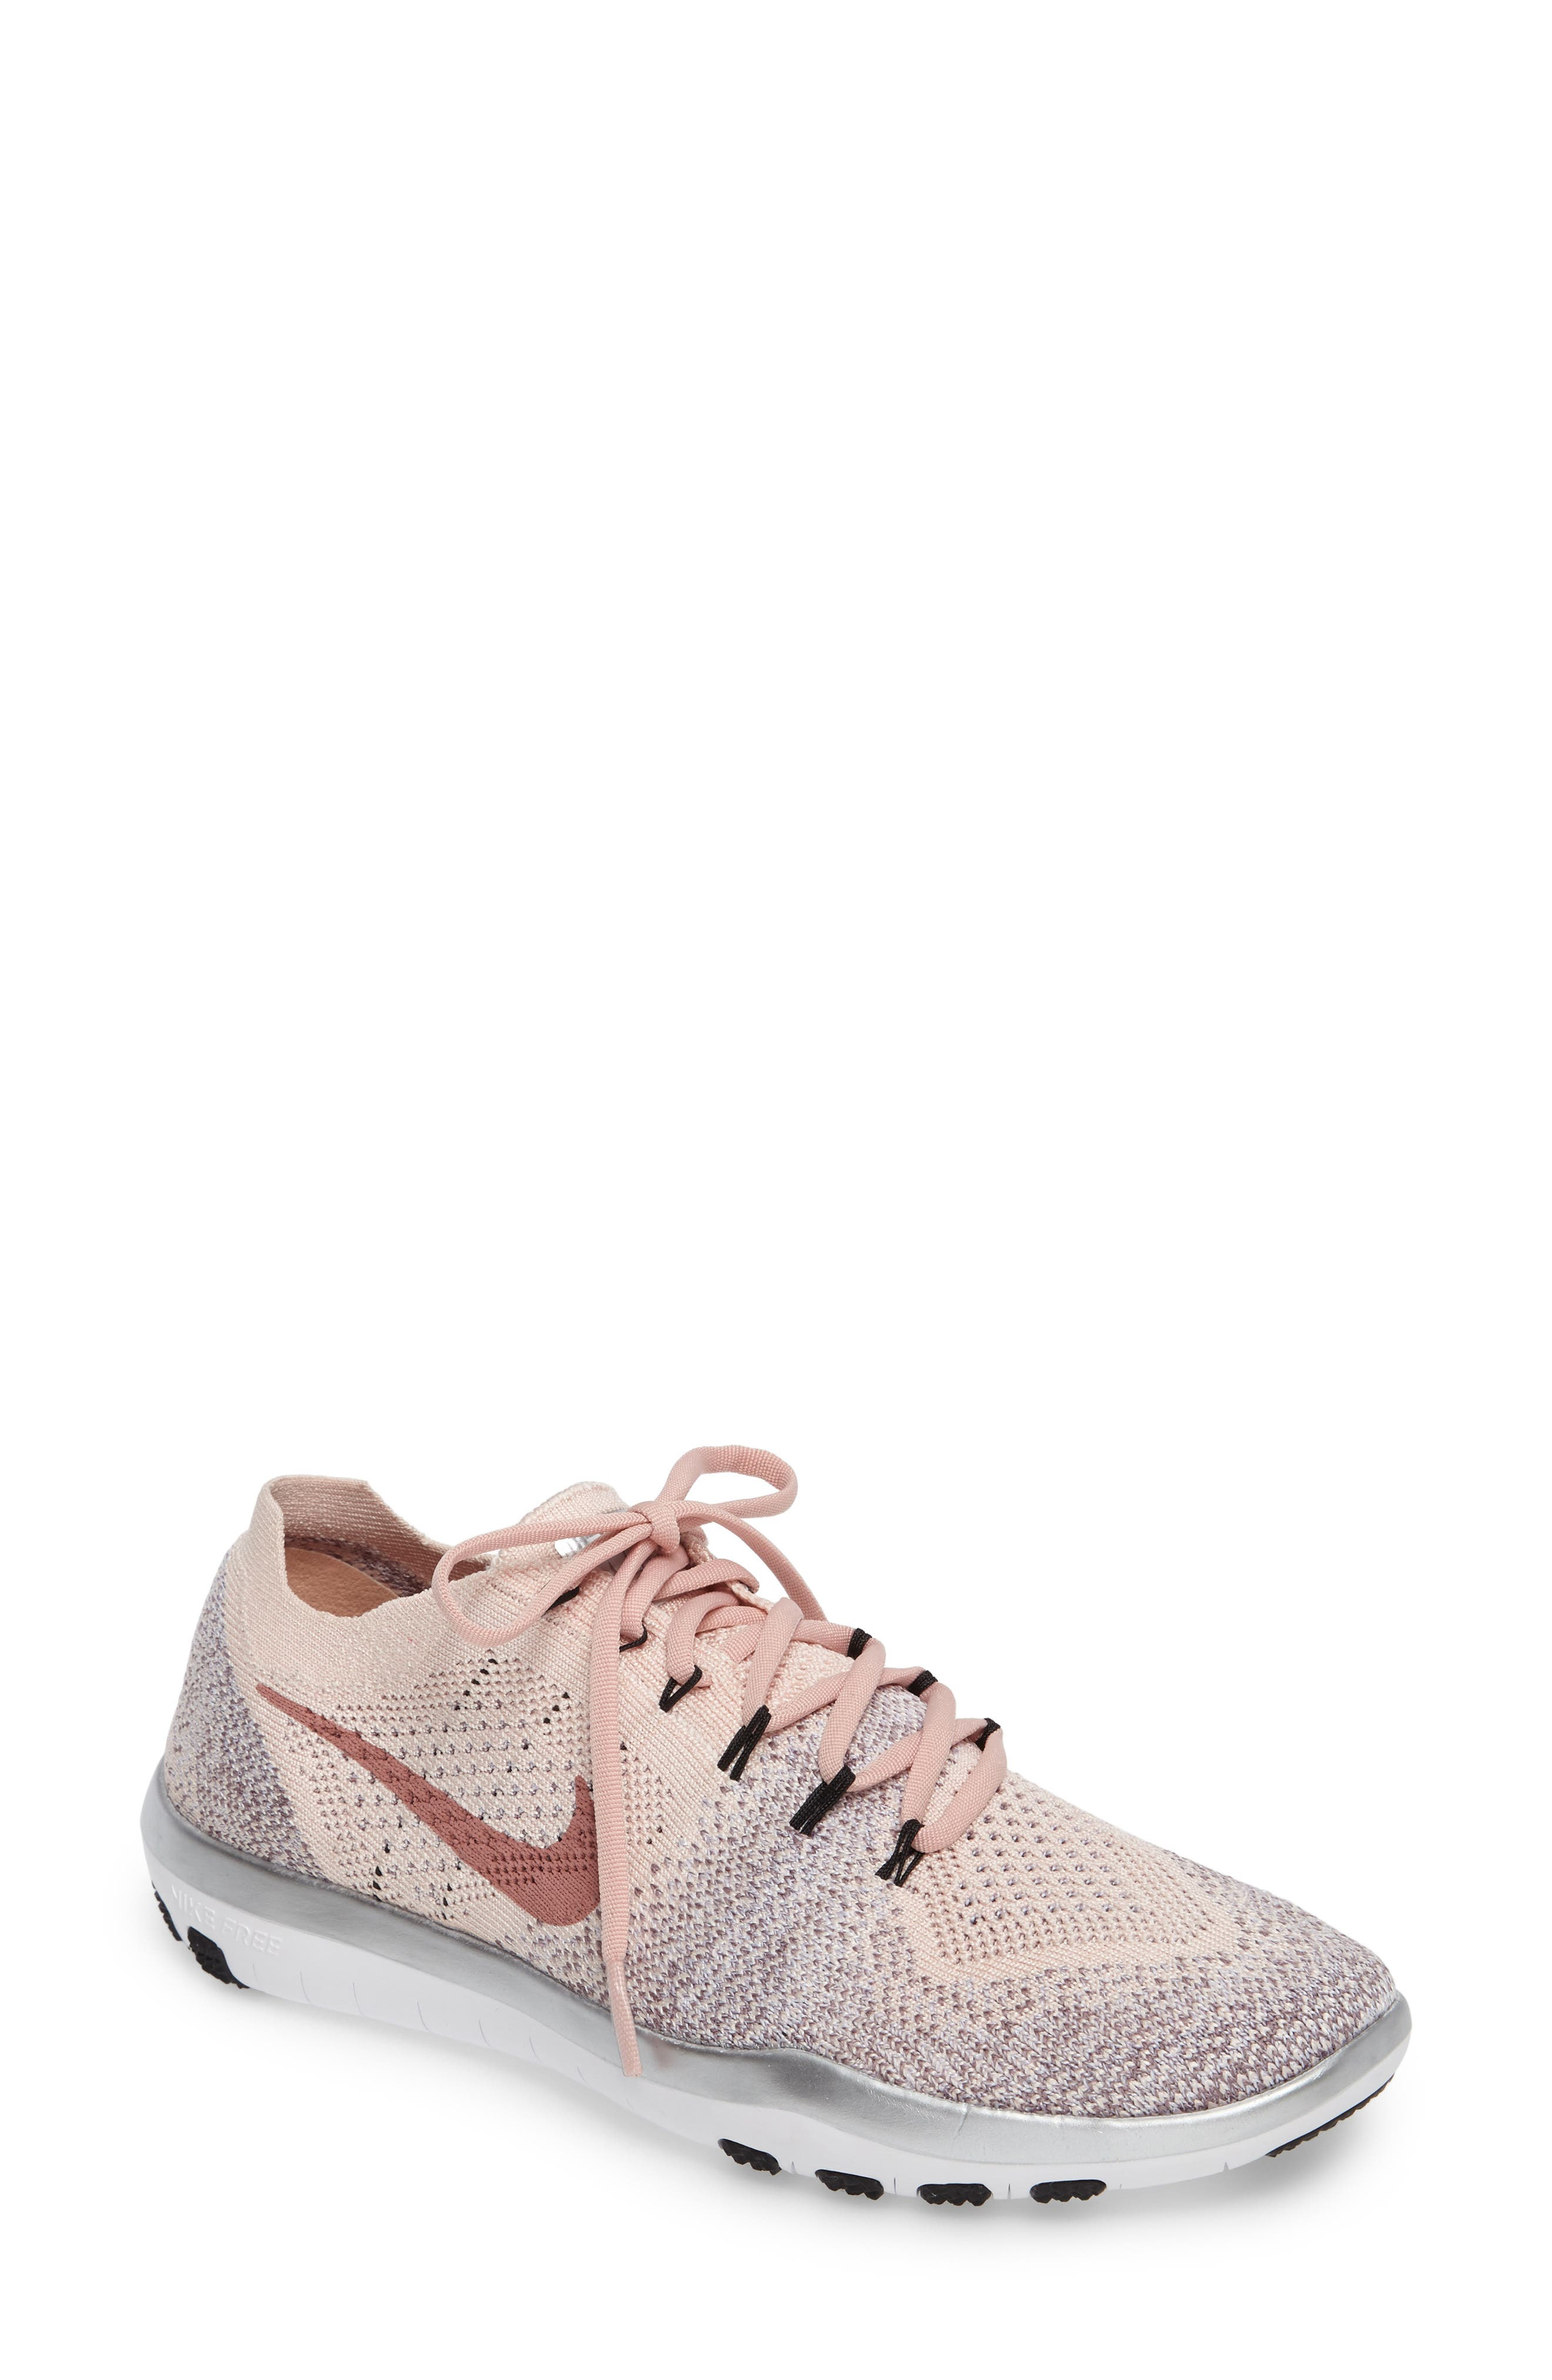 Nike Free Focus Flyknit Bionic Training Womens Shoes Blush Pink Sunset Ombre 7.5